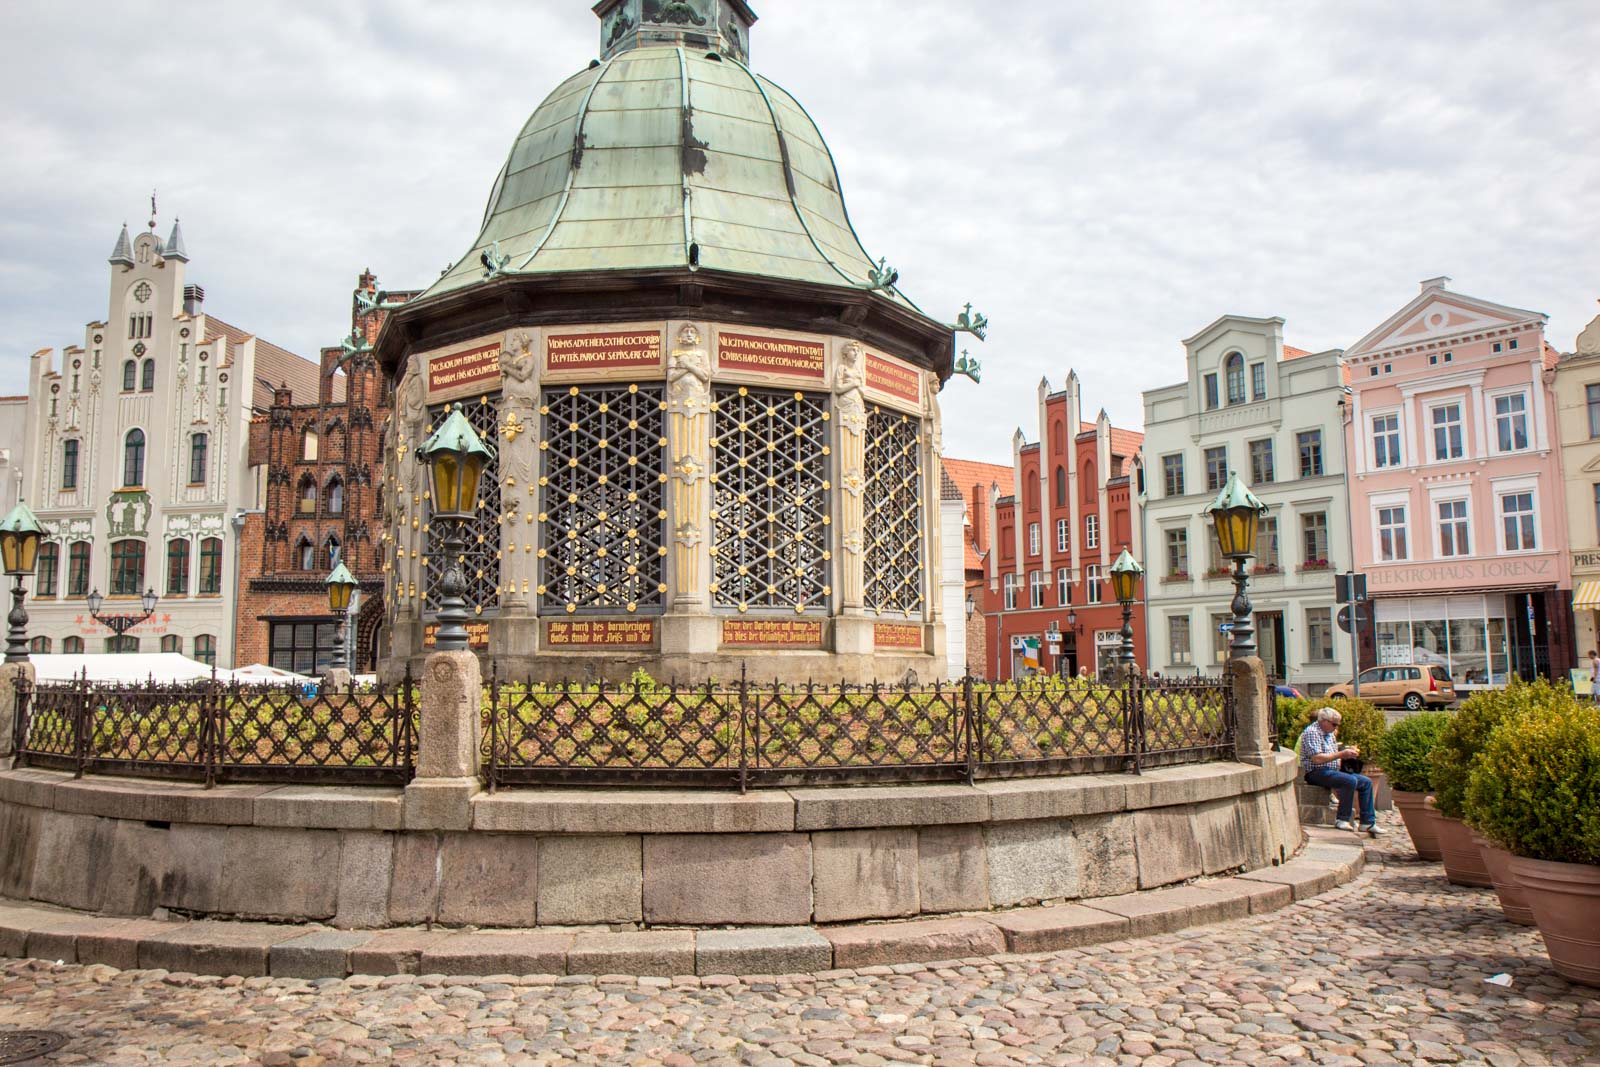 Visiting Wismar, World Heritage Site, Germany